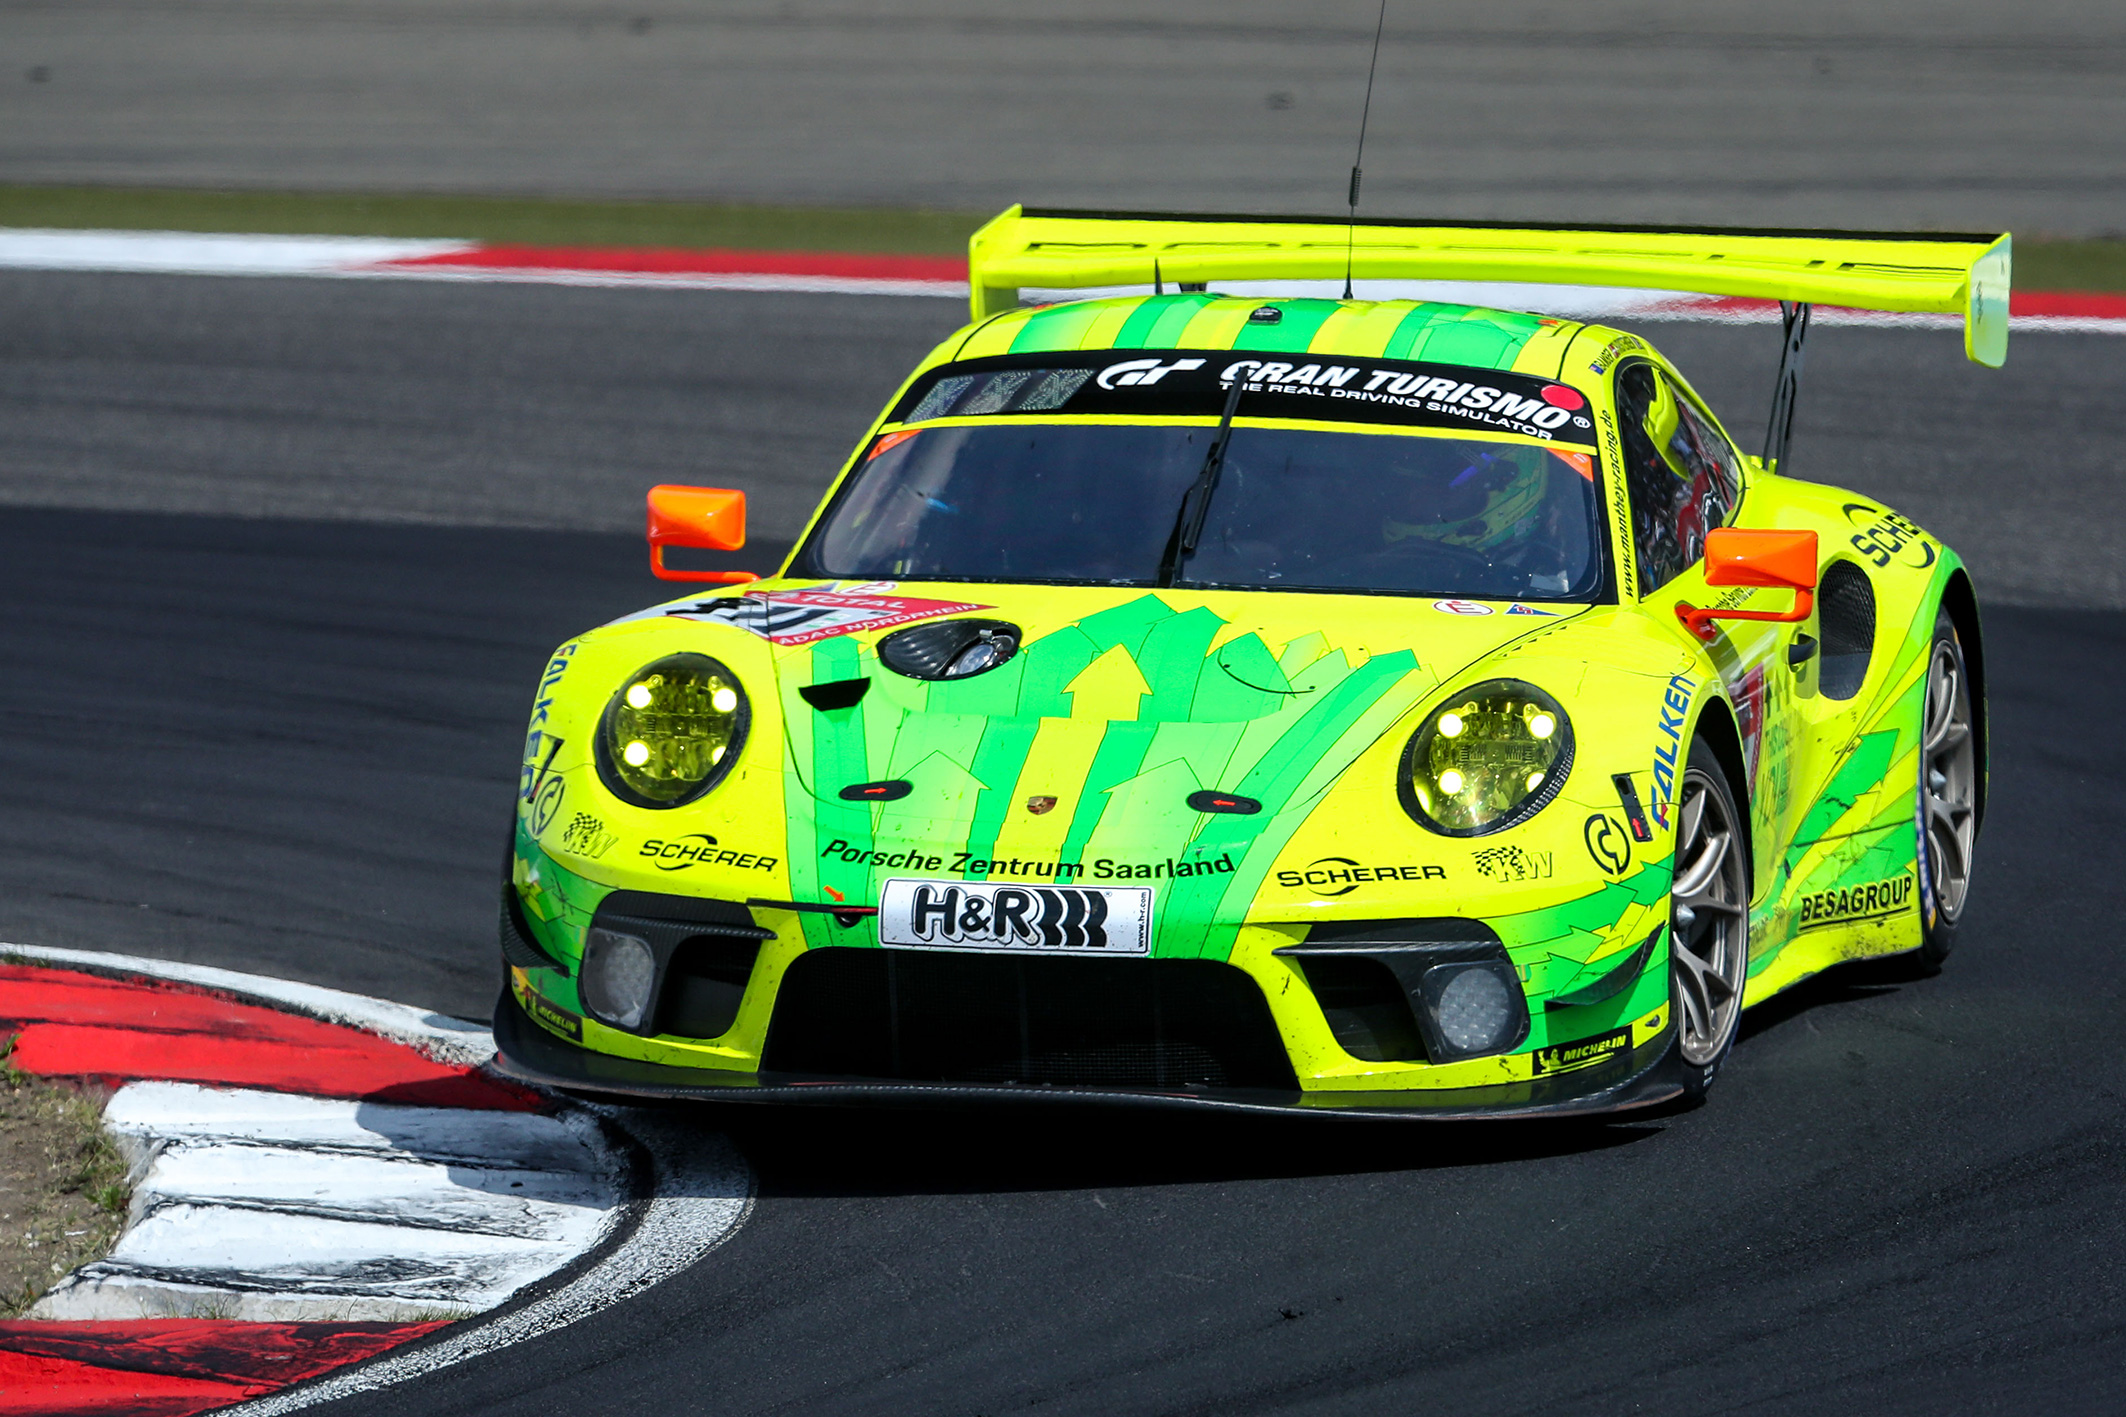 Porsche #911 subsequently disqualified